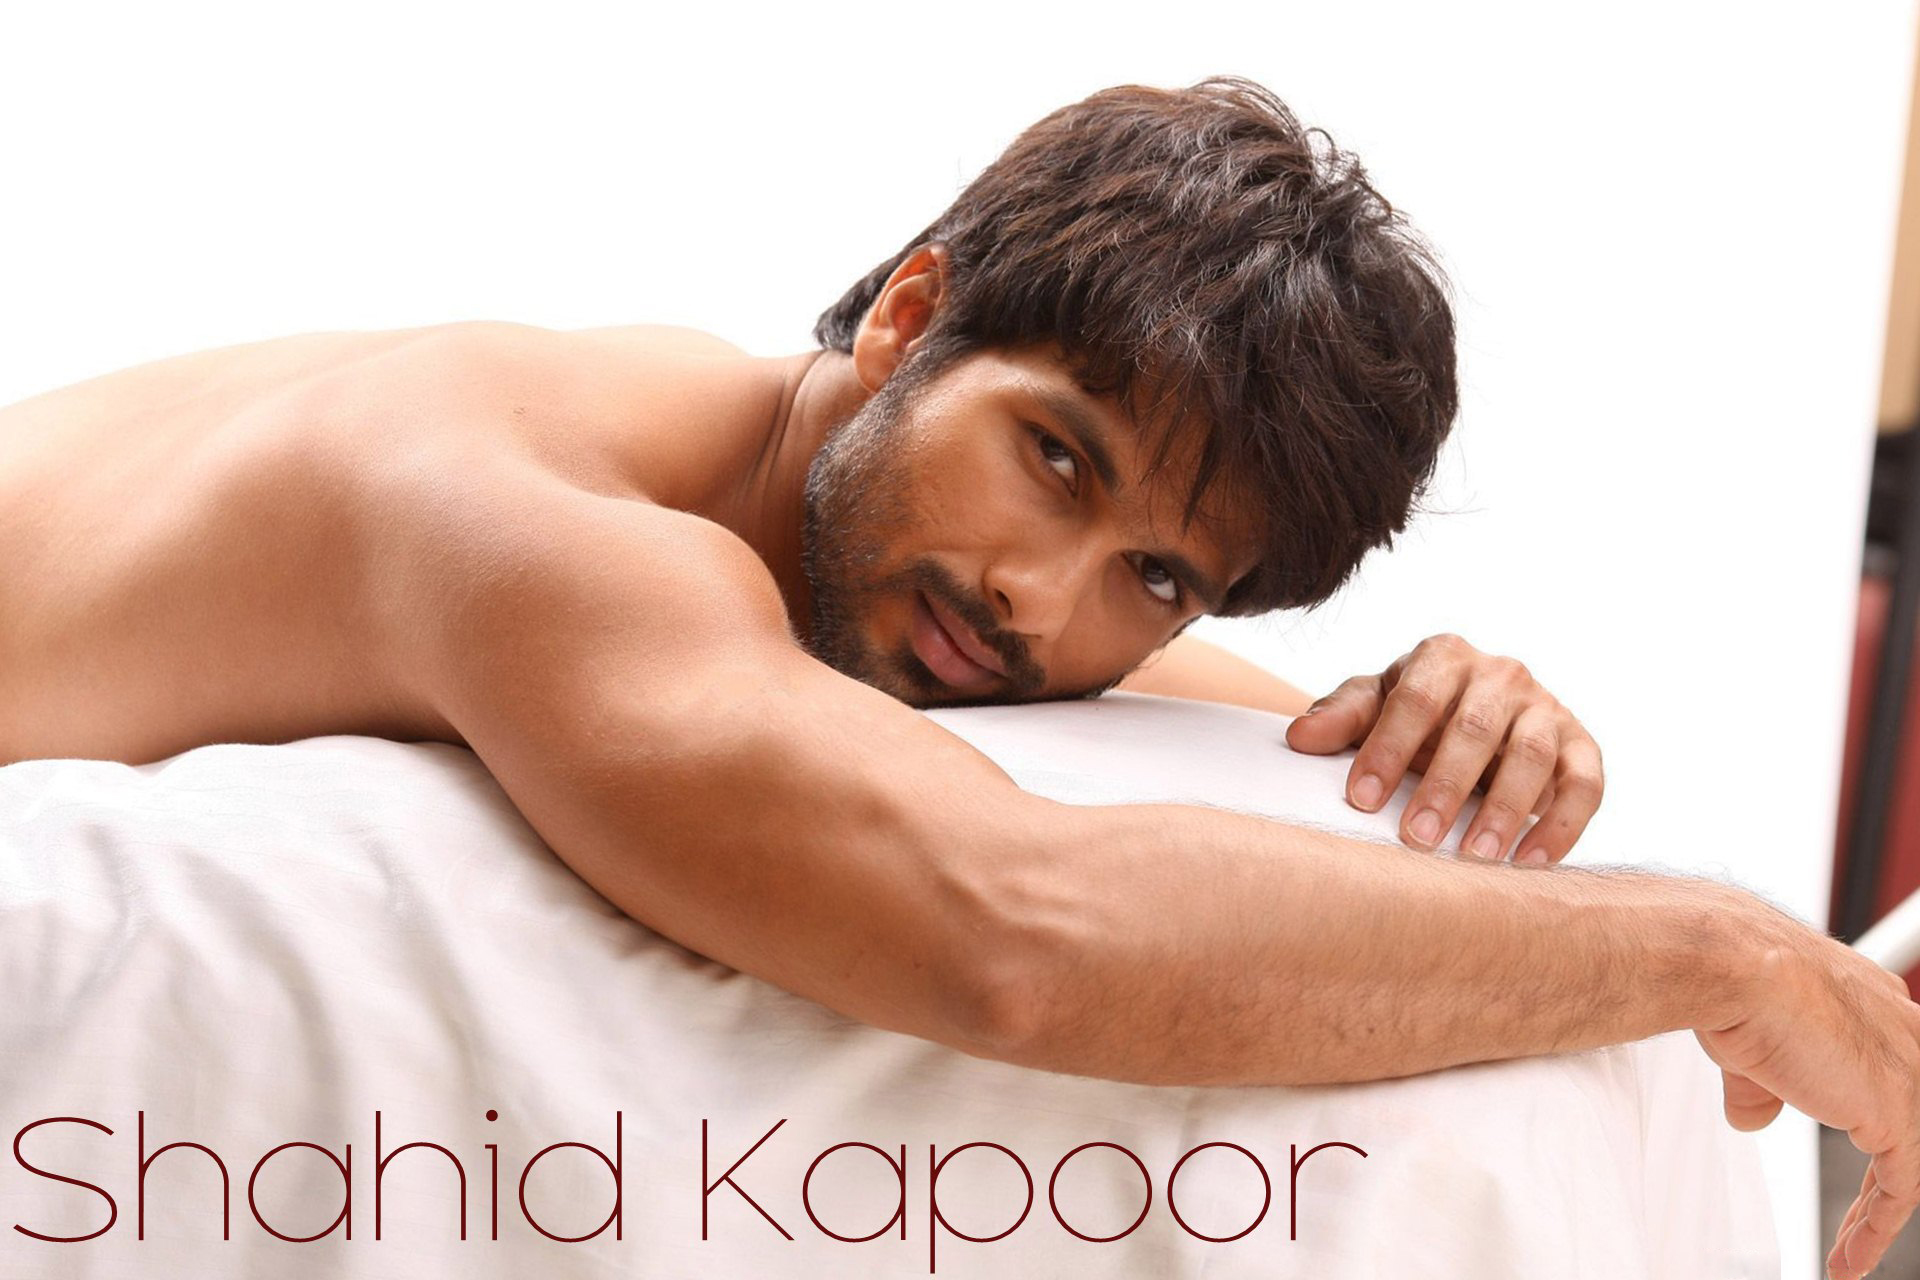 download shahid kapoor body photoshoot 2248x2248 resolution, full hd